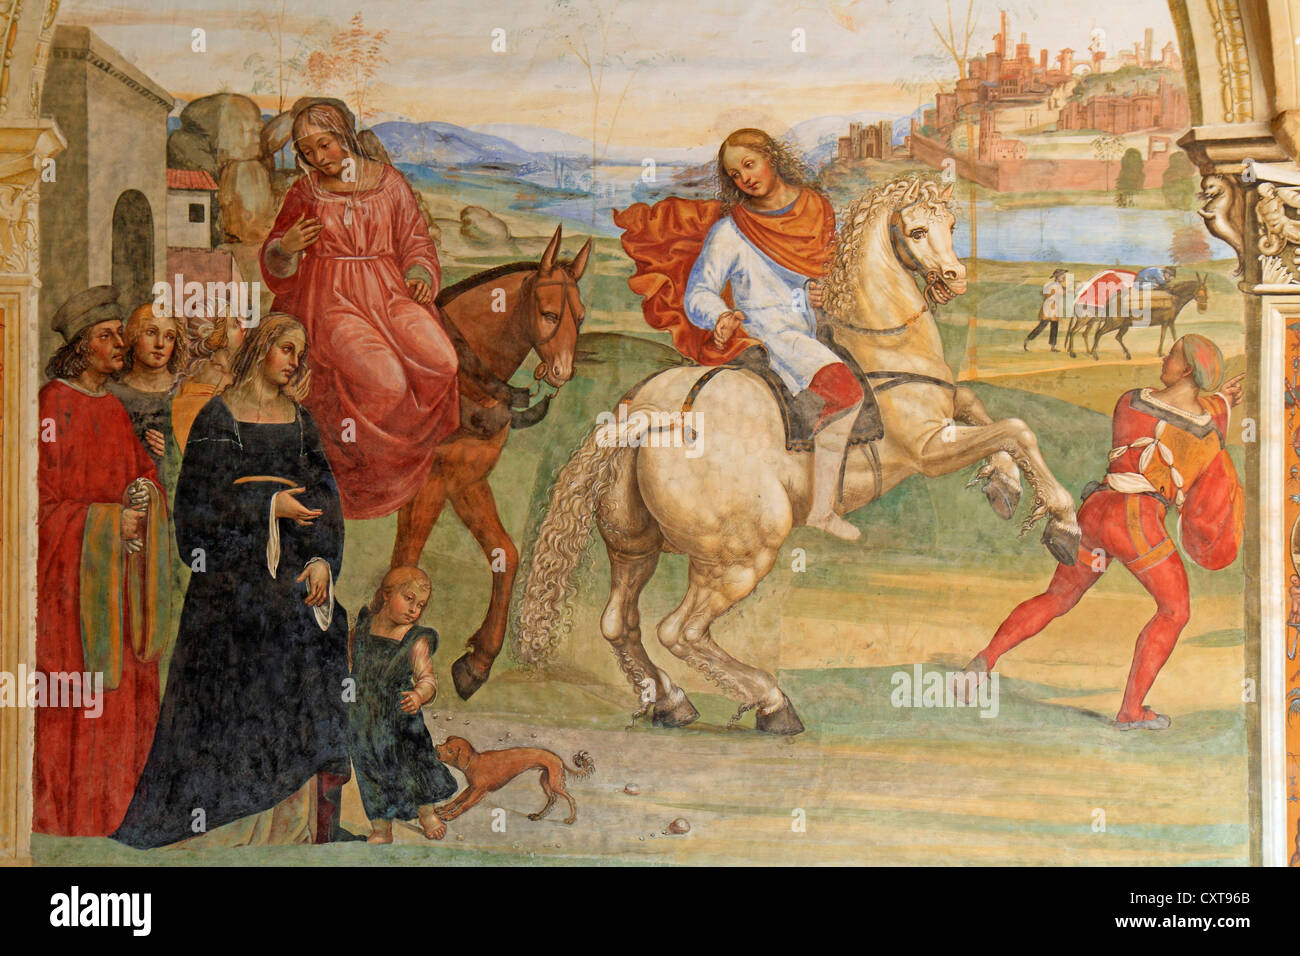 Fresco, life of St. Benedict, fresco by Sodoma, picture 1: Benedict on a white horse, leaving his parental home - Stock Image